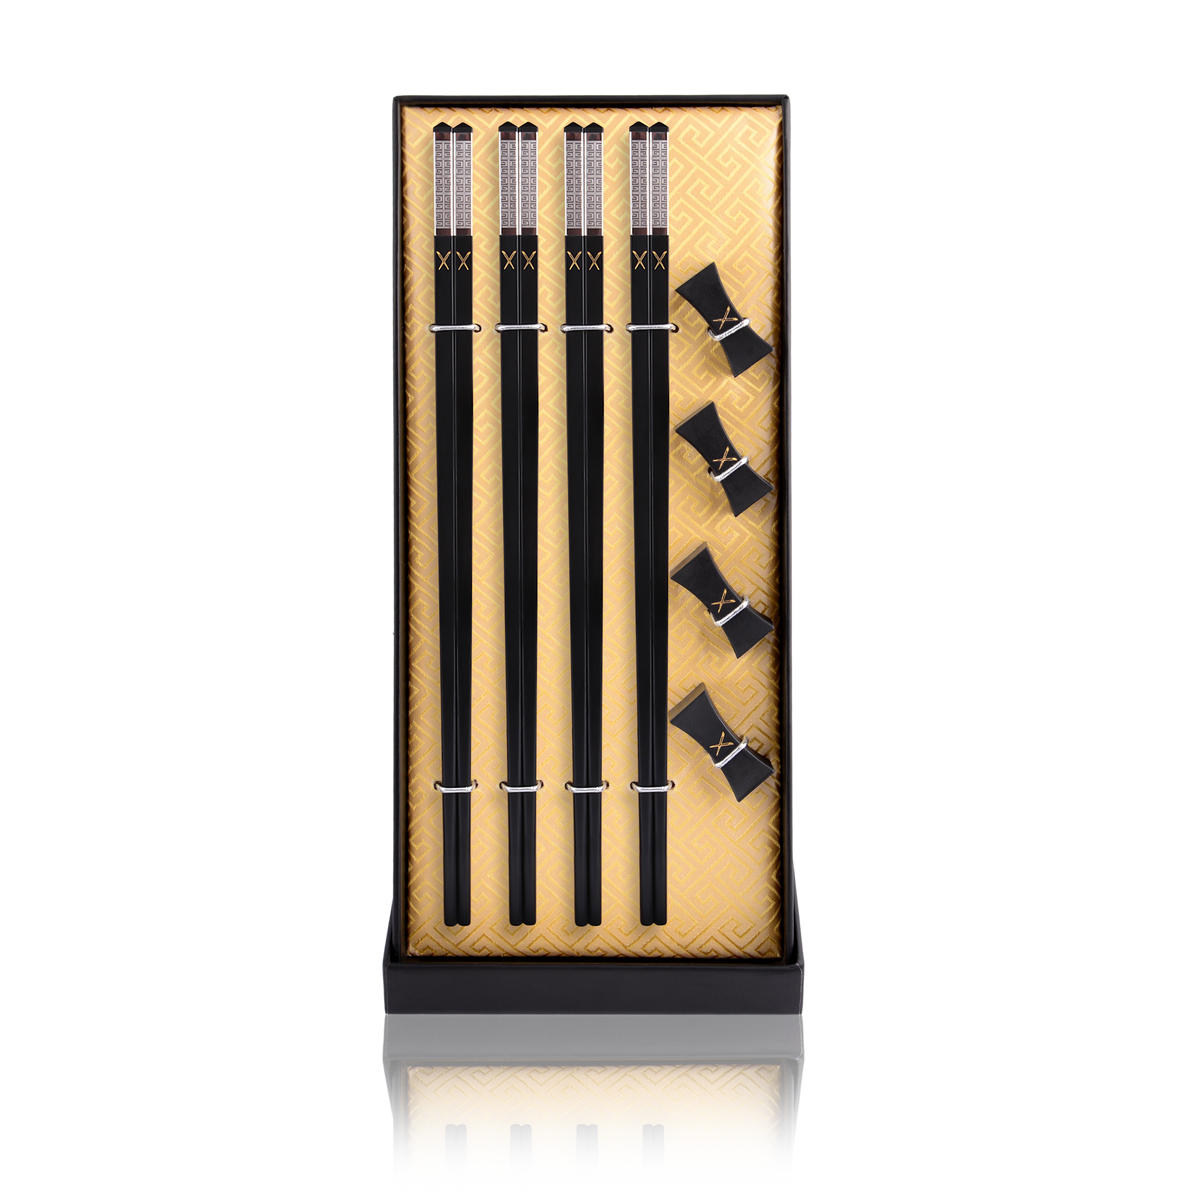 Luxury Chopsticks Set. Our chopsticks are luxurious, reusable and safe to use. Packed in a beautiful set, our designs are modern, traditional and elegant. X-quisite - LuxSticks